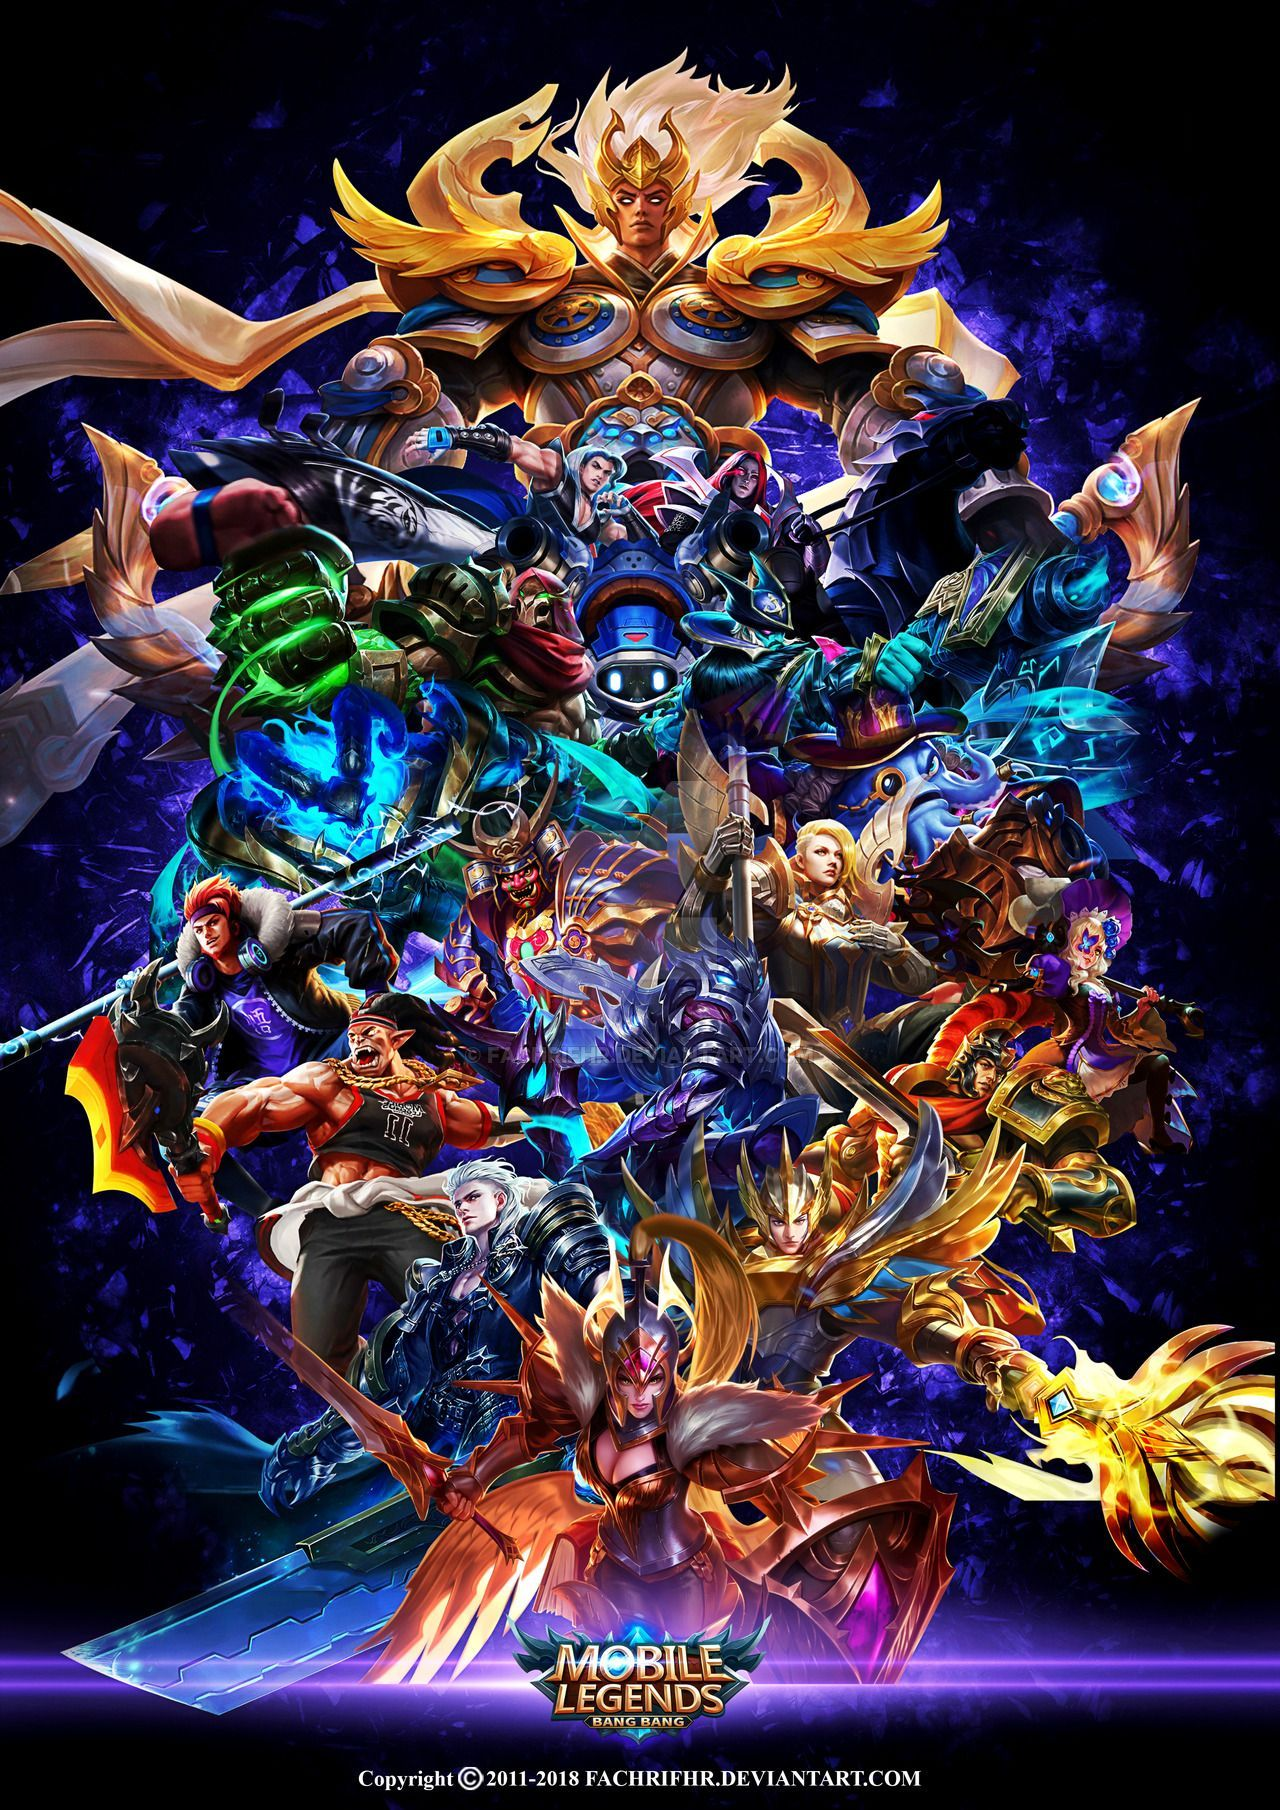 Mobile Legend Wallpapers - Top Free Mobile Legend Backgrounds